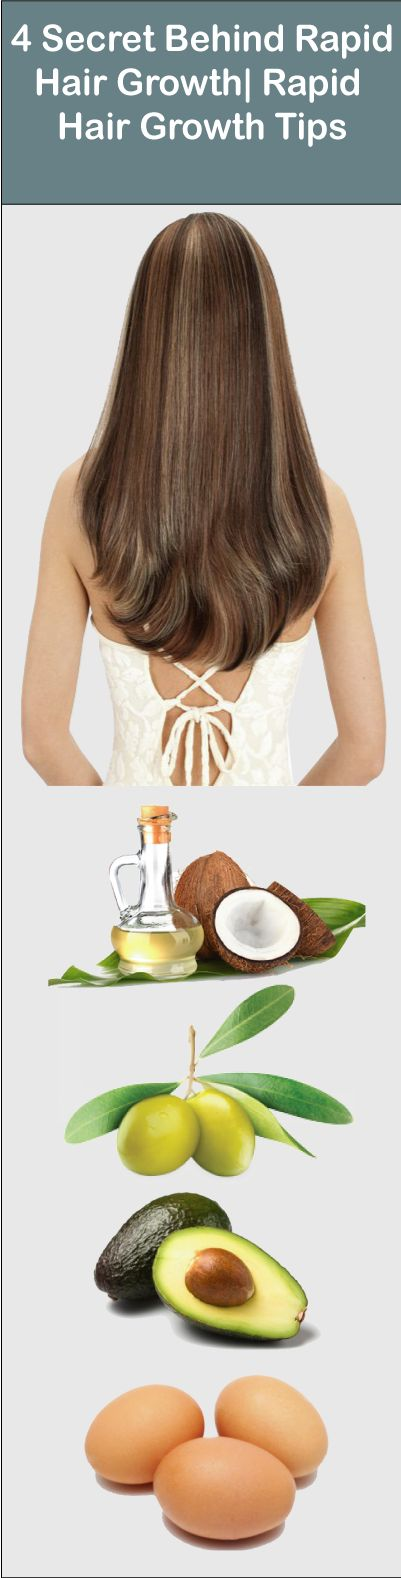 If you are looking for quick hair growth tips, you are in right place. You will get here quickest, easiest healthy hair tips for your hair. Keep reading.